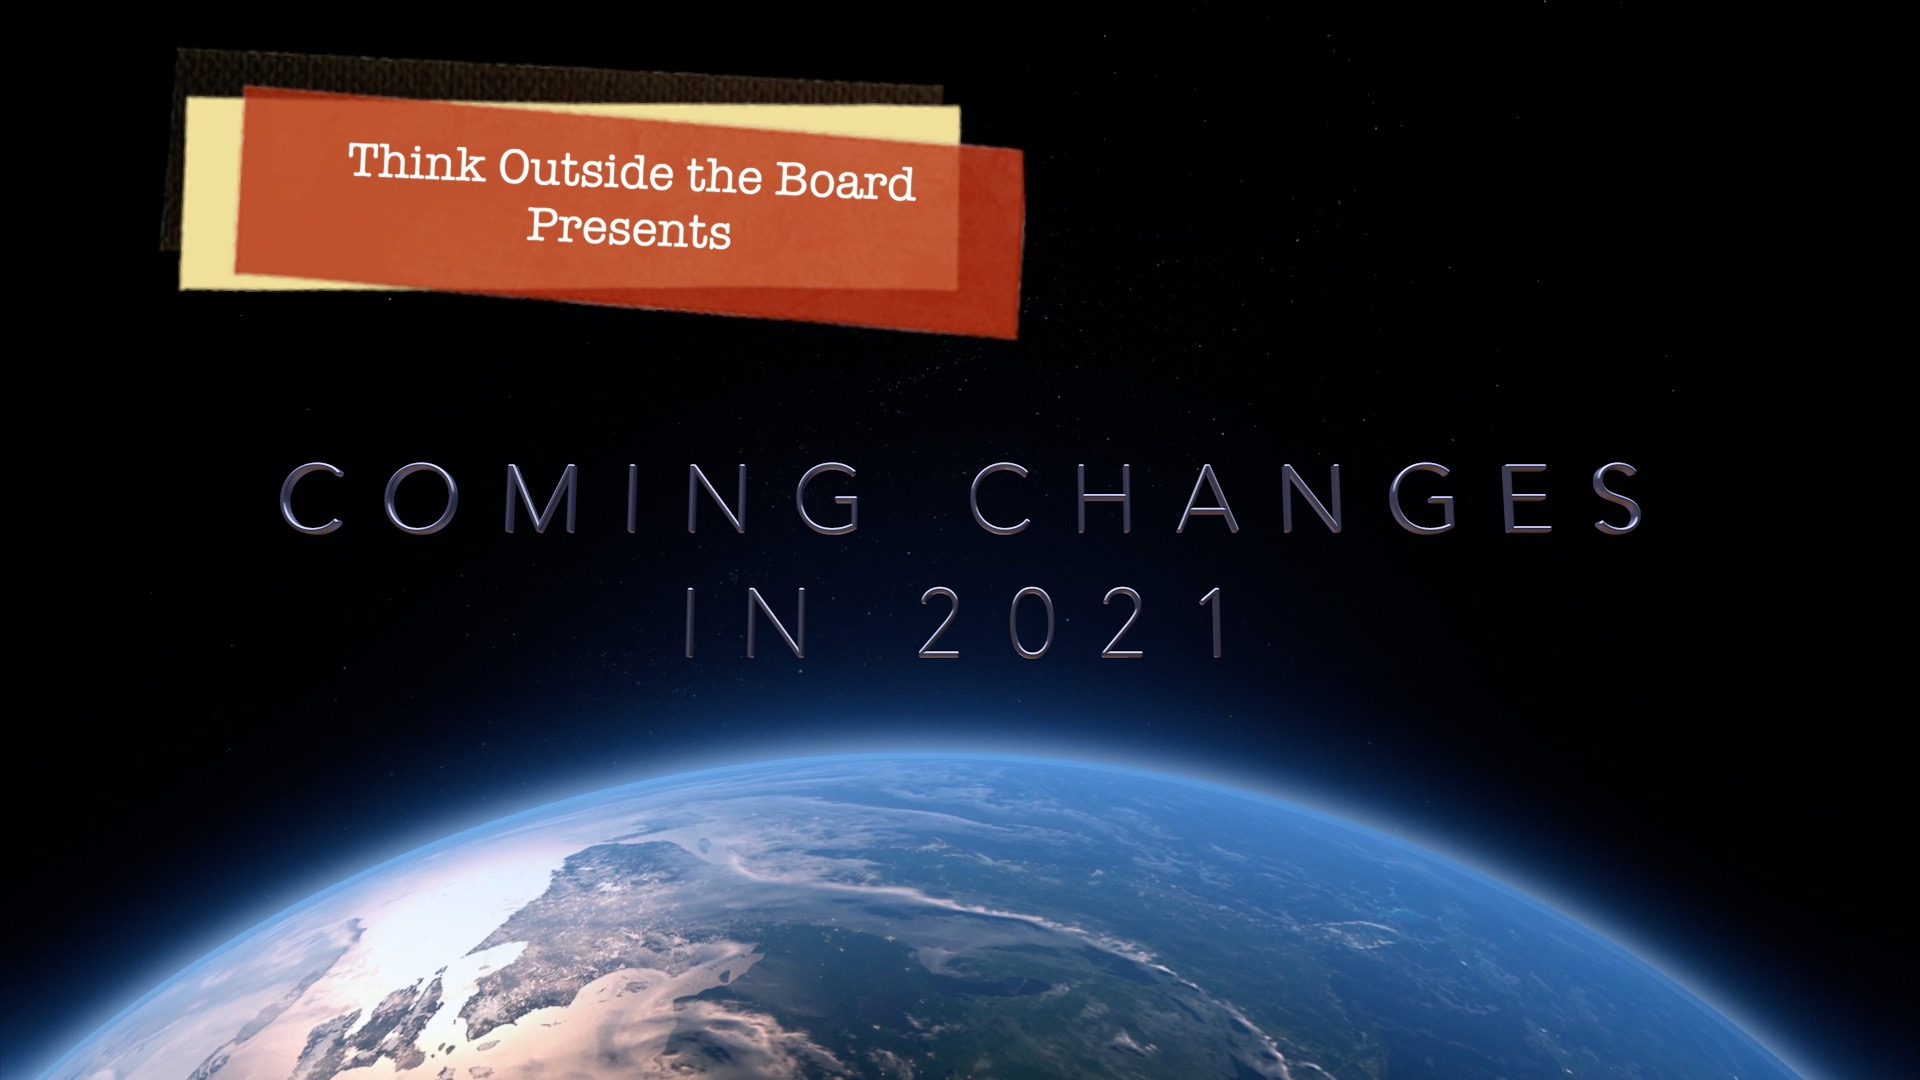 Coming Changes in 2021